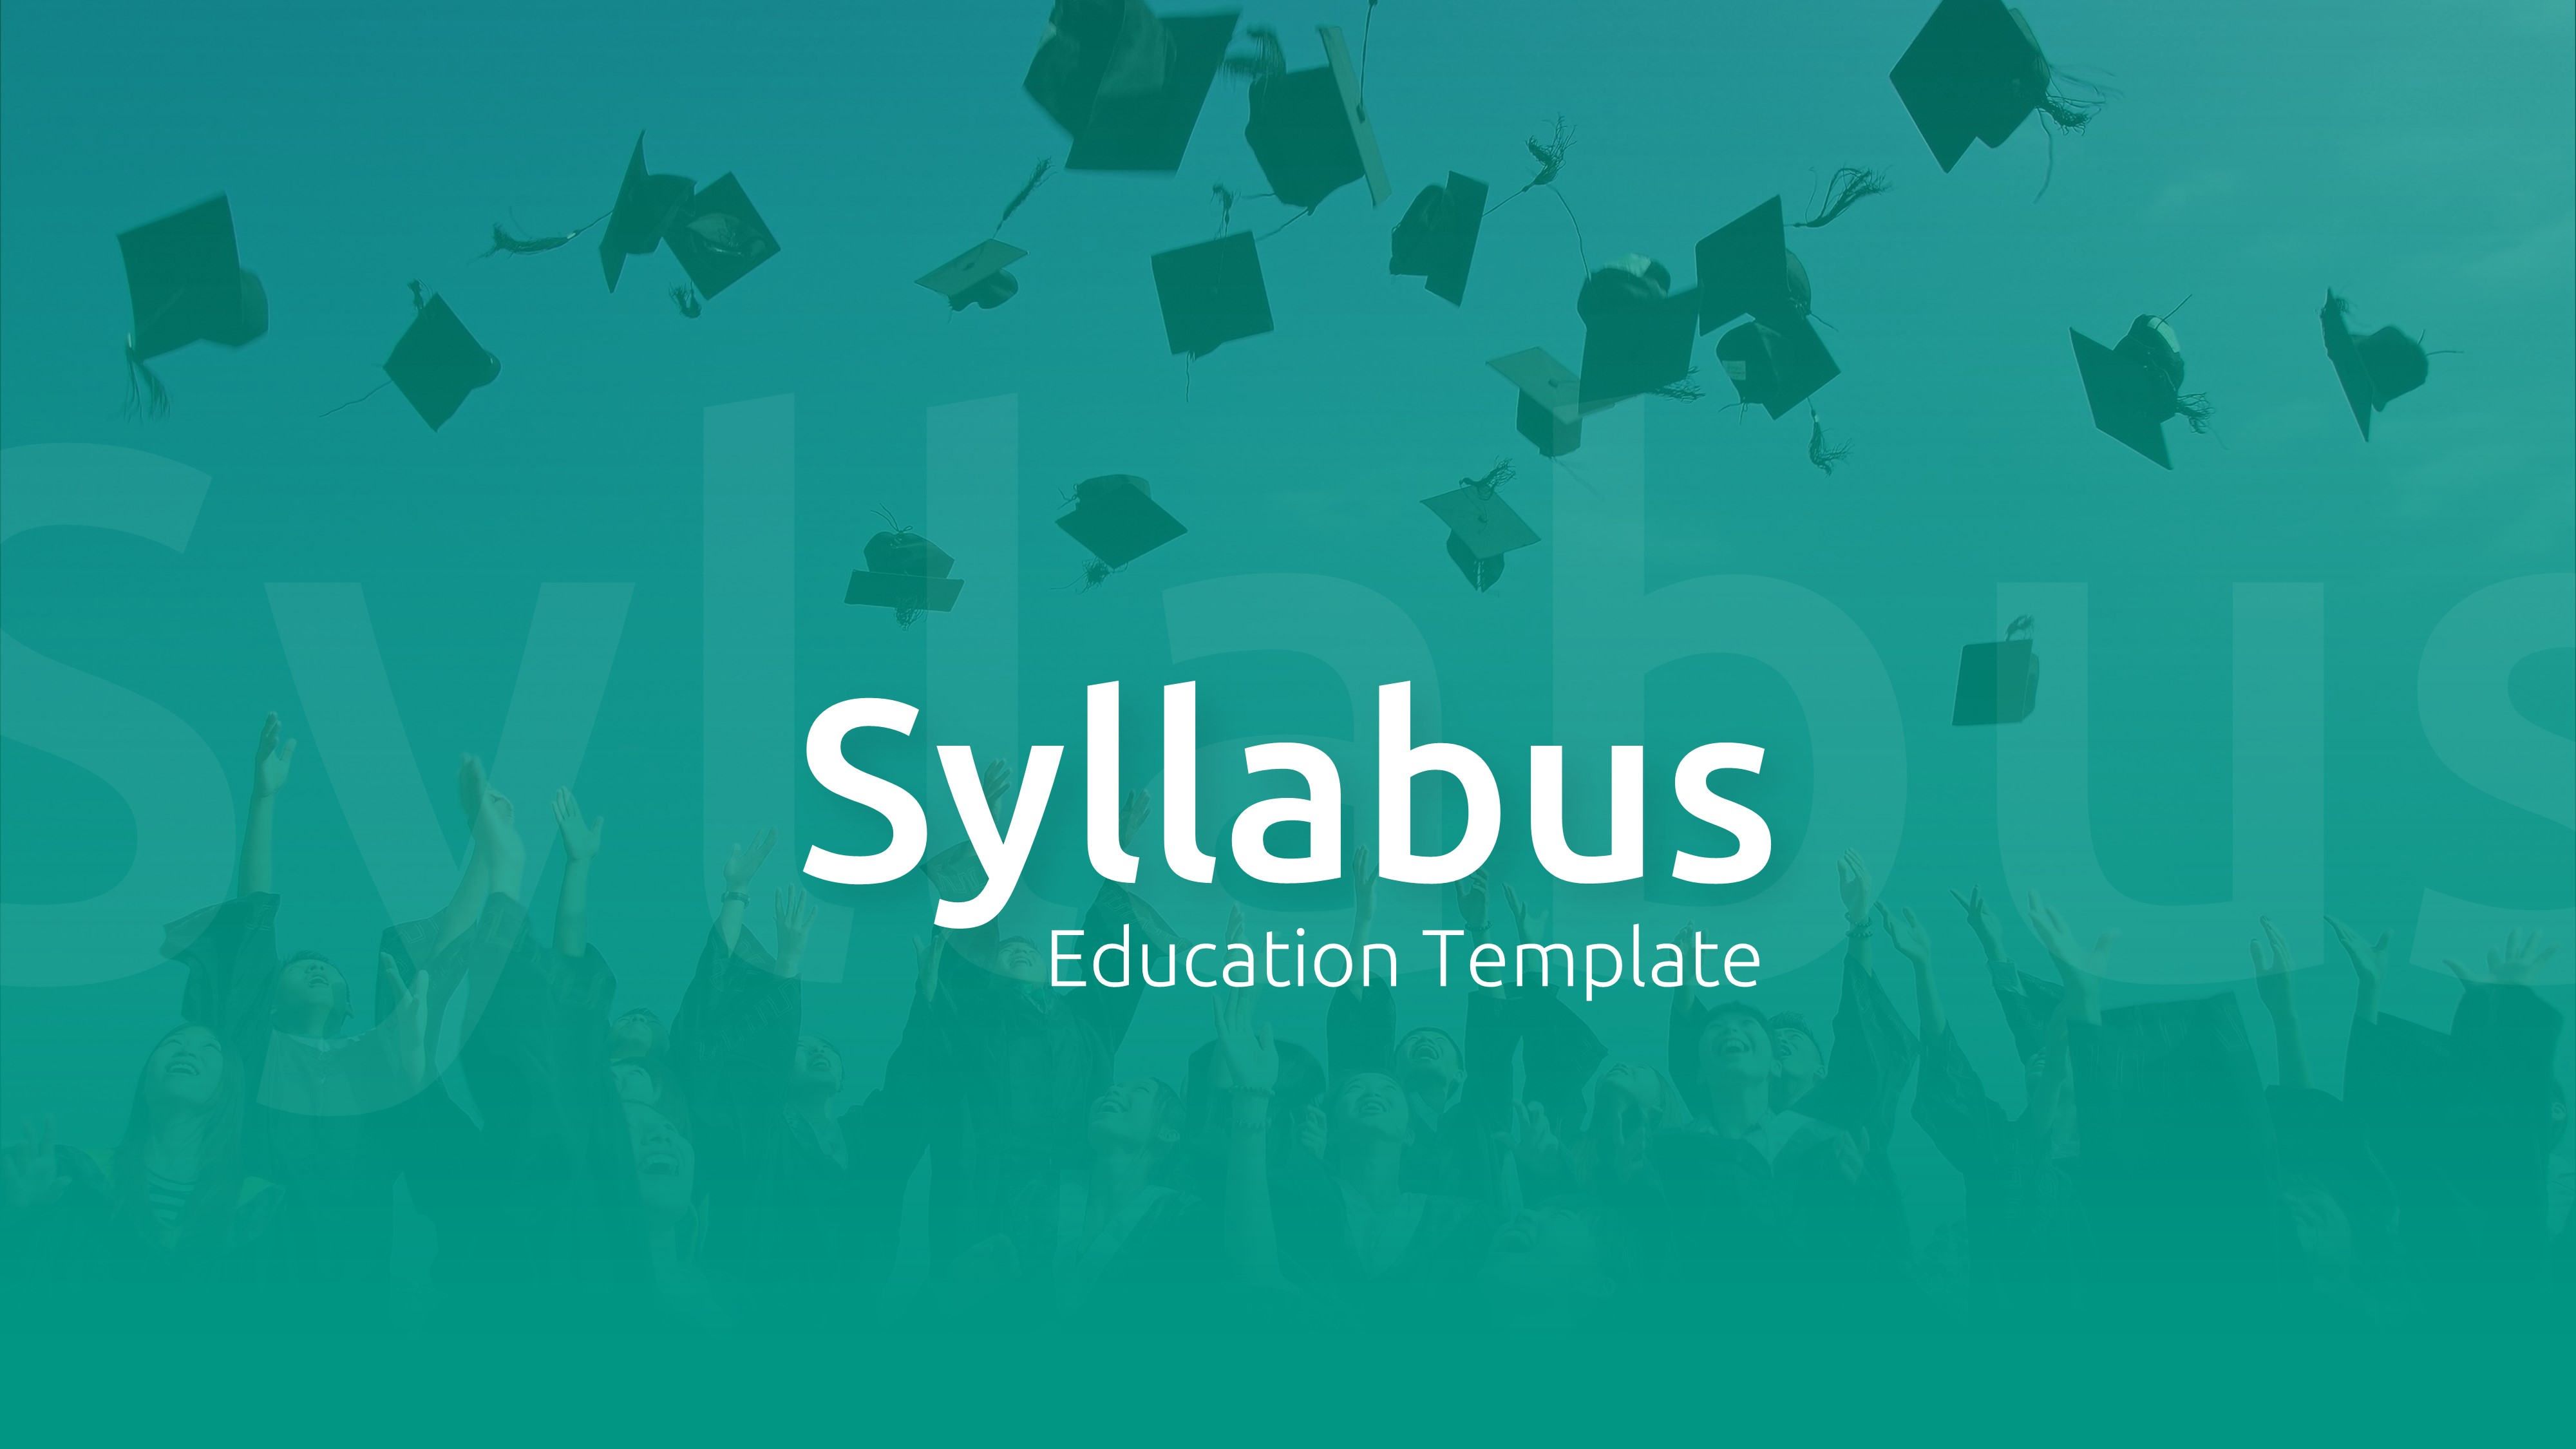 Syllabus - Education PowerPoint Template 1